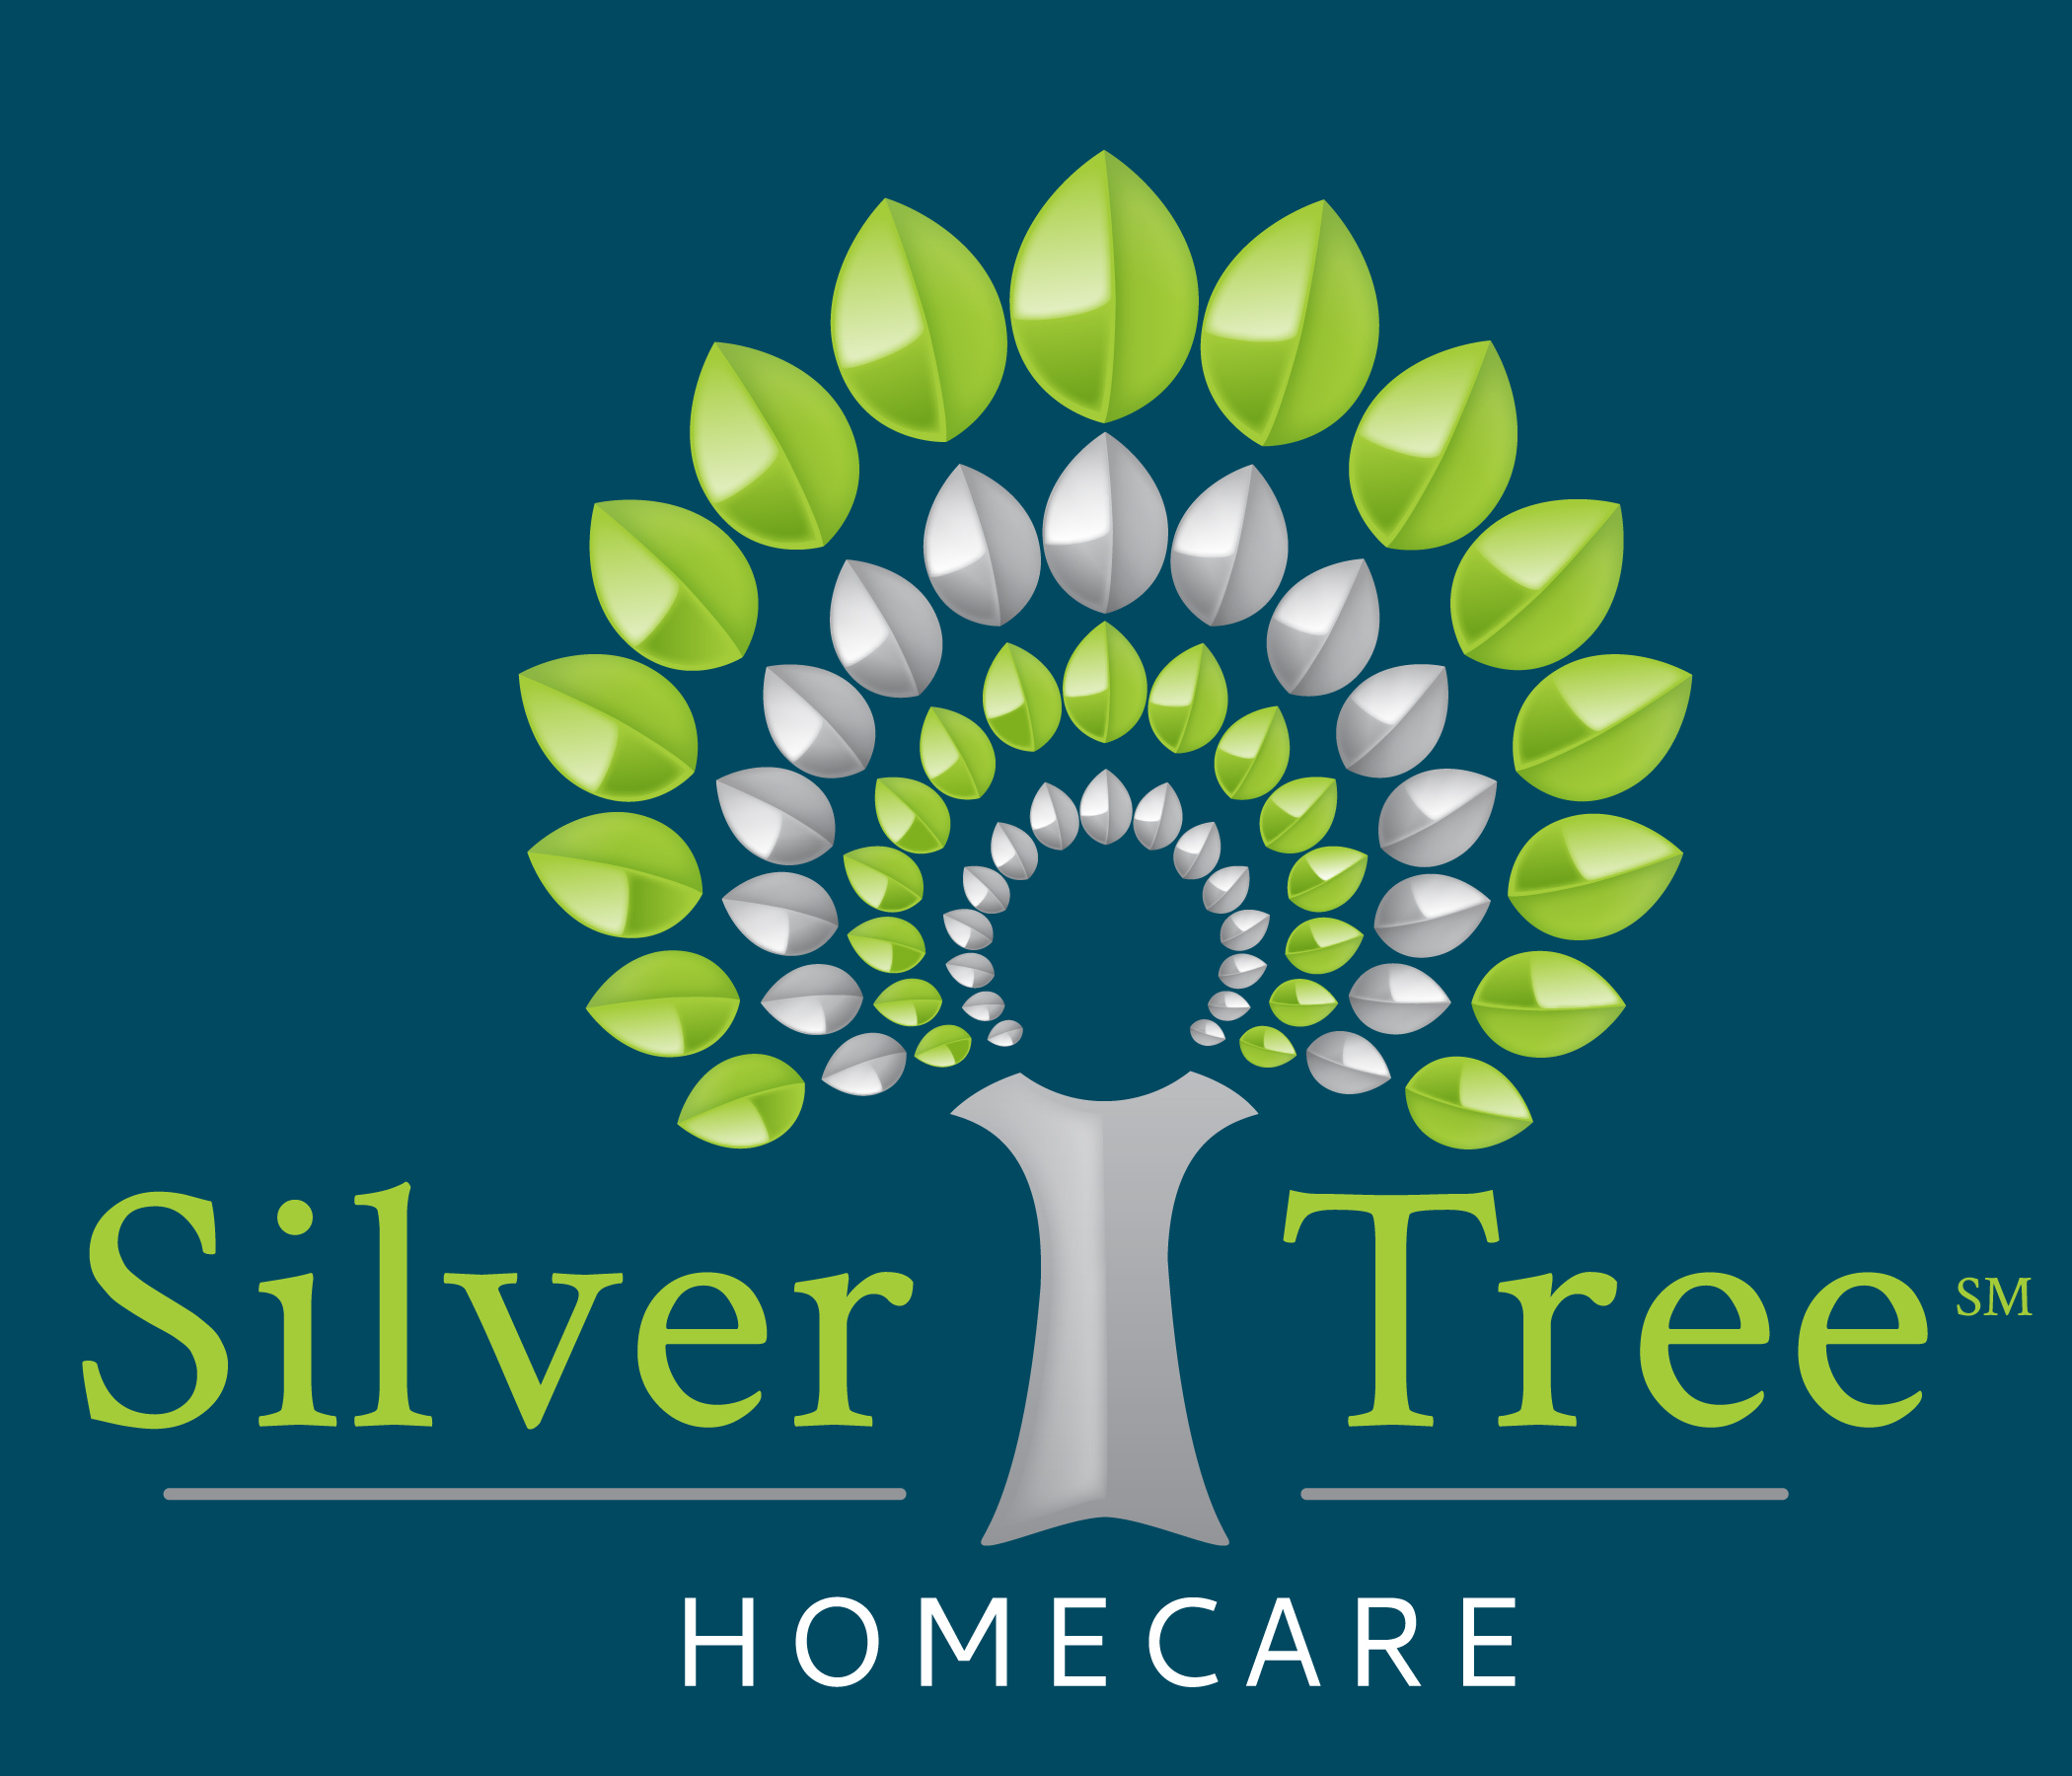 Silver Tree logo blue background (hi-res).jpg